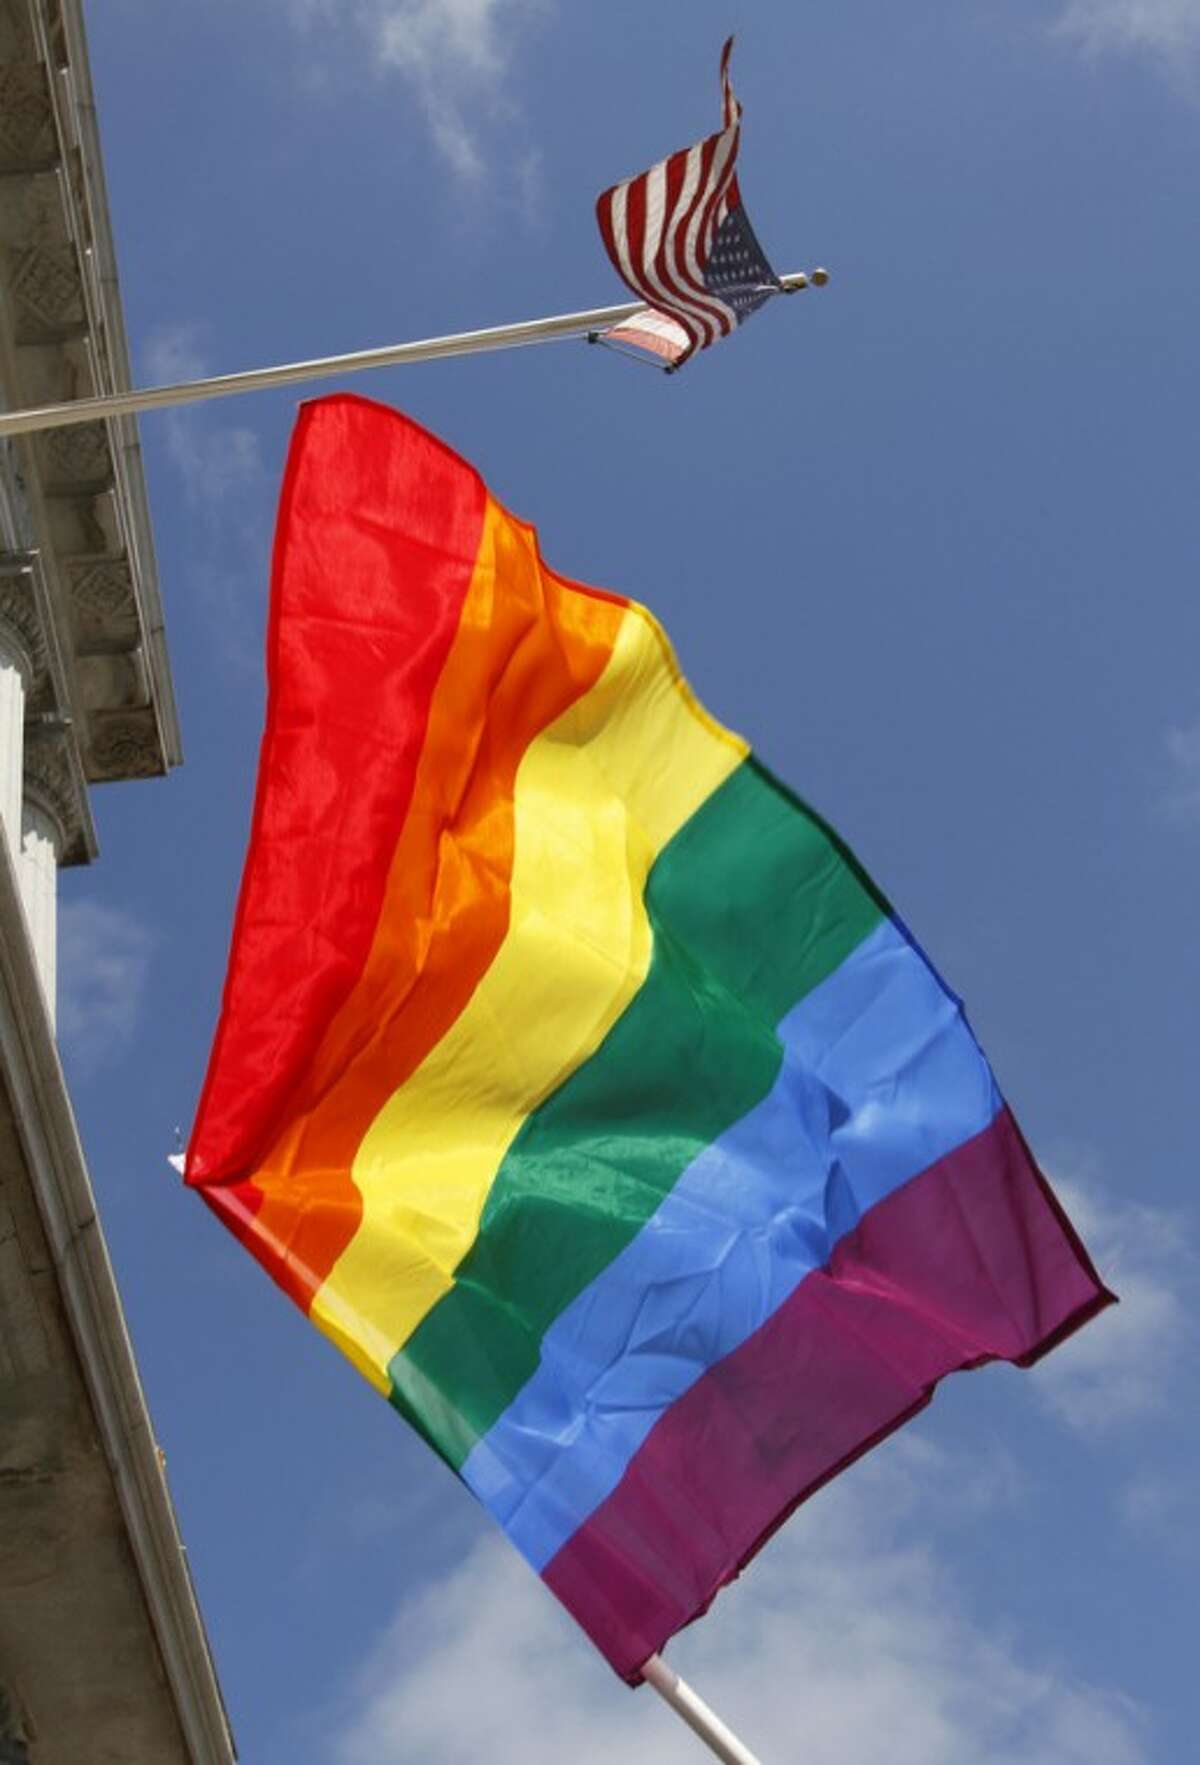 In this file photo from Thursday, Aug. 12, 2010, a rainbow flag flies below the American flag outside City Hall in San Francisco. The U.S. Supreme Court decided Friday, Dec. 7, 2012, to hear the appeal of a ruling that struck down Proposition 8, the state?'s measure that banned same sex marriages. The highly anticipated decision by the court means same-sex marriages will not resume in California any time soon. The justices likely will not issue a ruling until spring of next year. A federal appeals court ruled in February that Proposition 8?'s ban on same-sex marriage was unconstitutional. But the court delayed implementing the order until same-sex marriage opponents proponents could ask the U.S. Supreme Court to review the ruling. (AP Photo/Ben Margot)